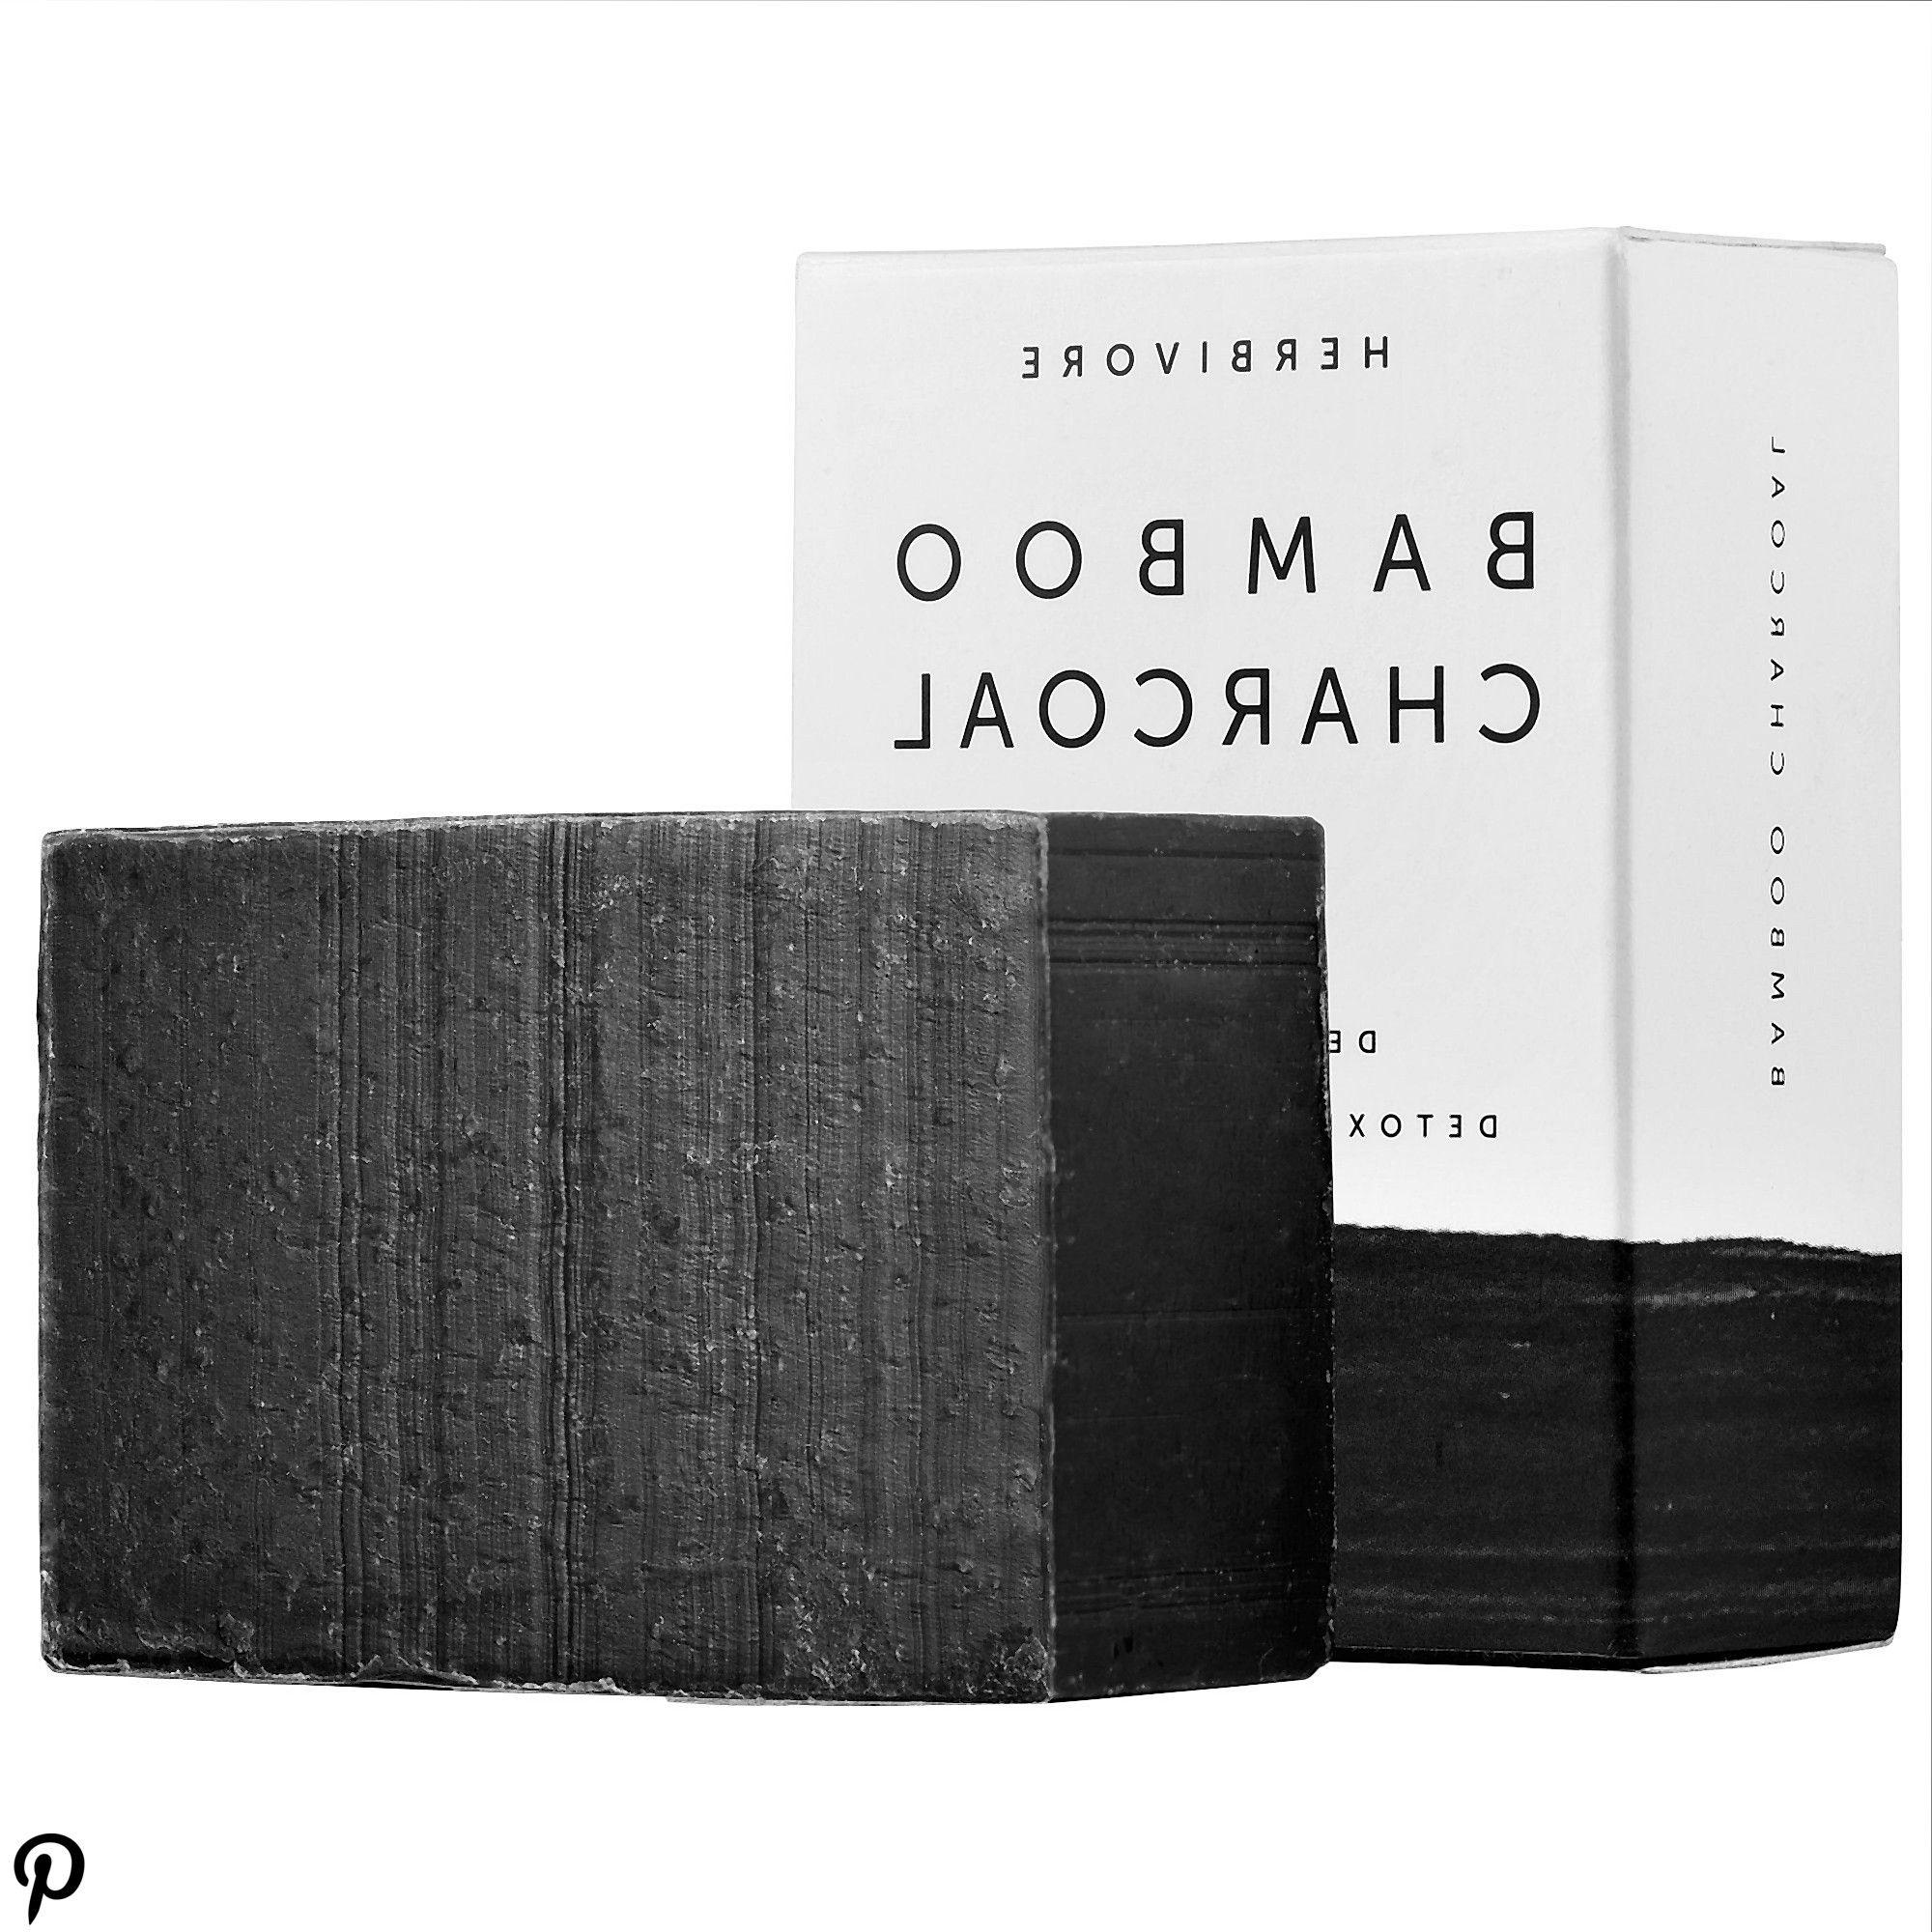 Shop Herbivores Bamboo Charcoal Detoxifying Soap Bar at Sephora The bar soap contains charcoal to Shop Herbivores Bamboo Charcoal Detoxifying Soap Bar at Sephora The bar...